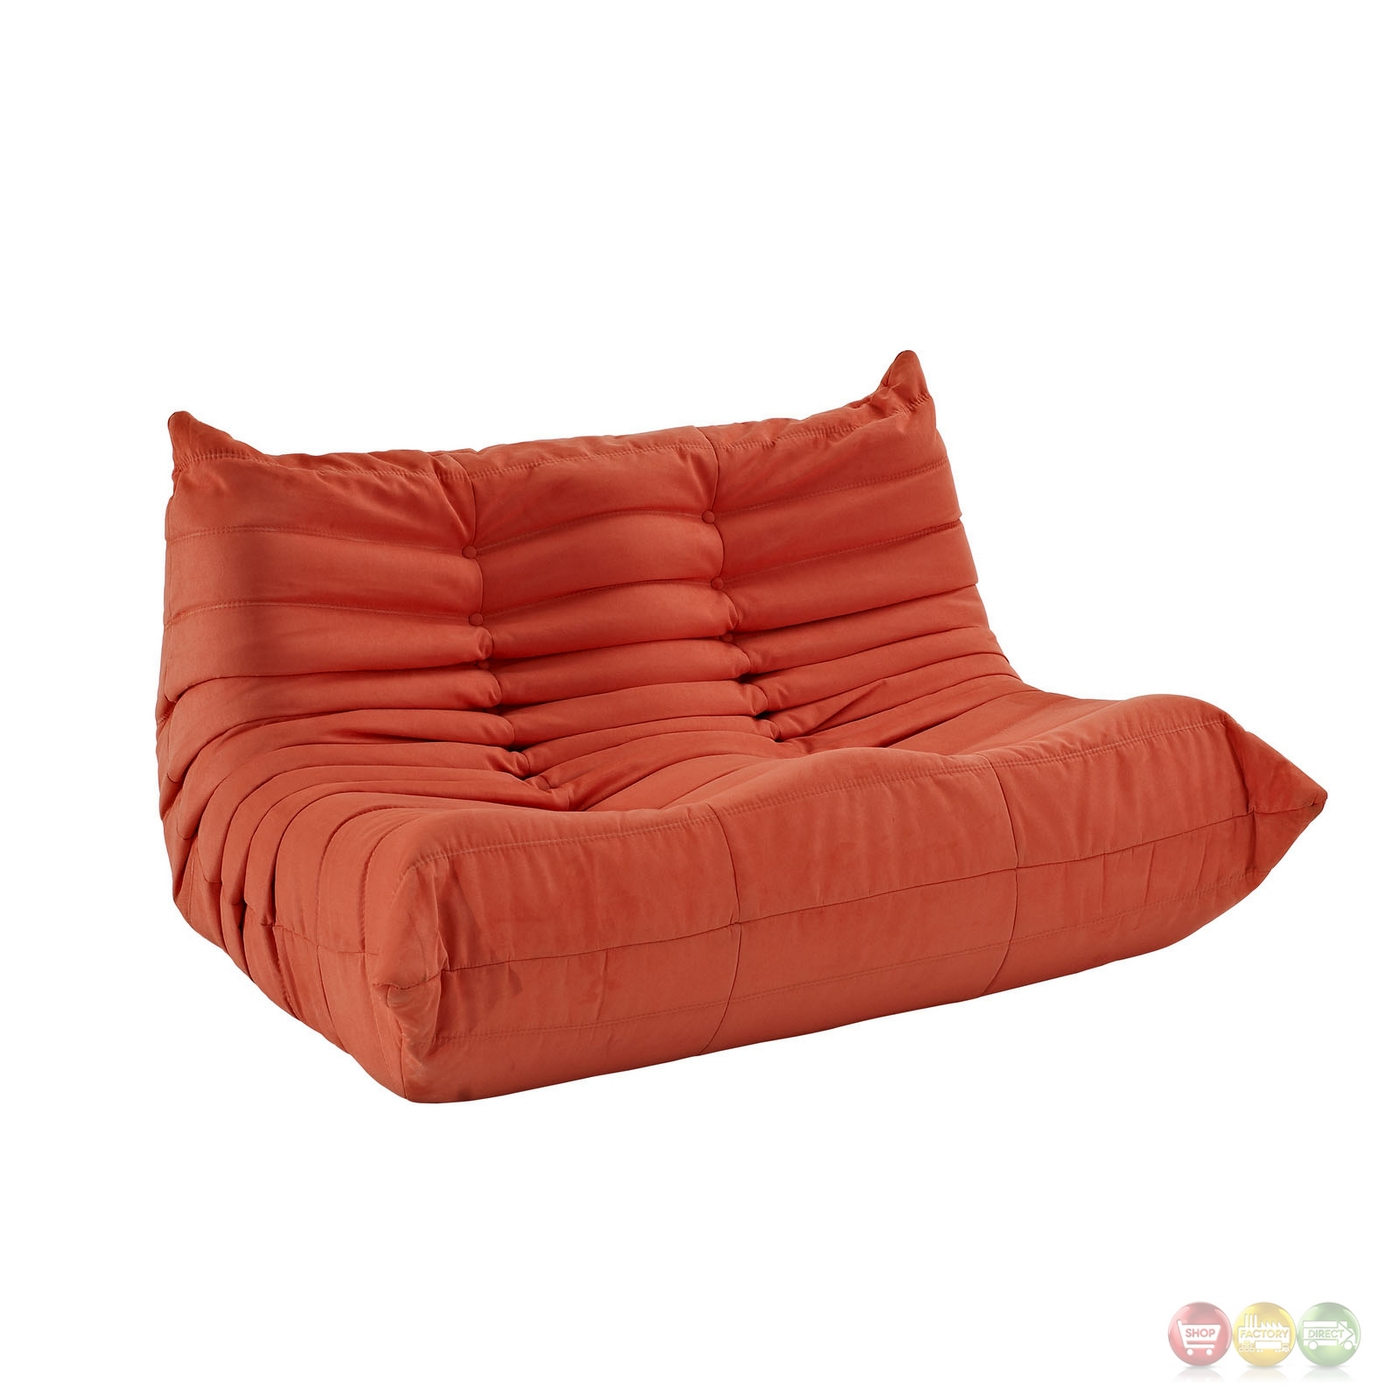 wave runner contemporary bean bag style upholstered loveseat orange